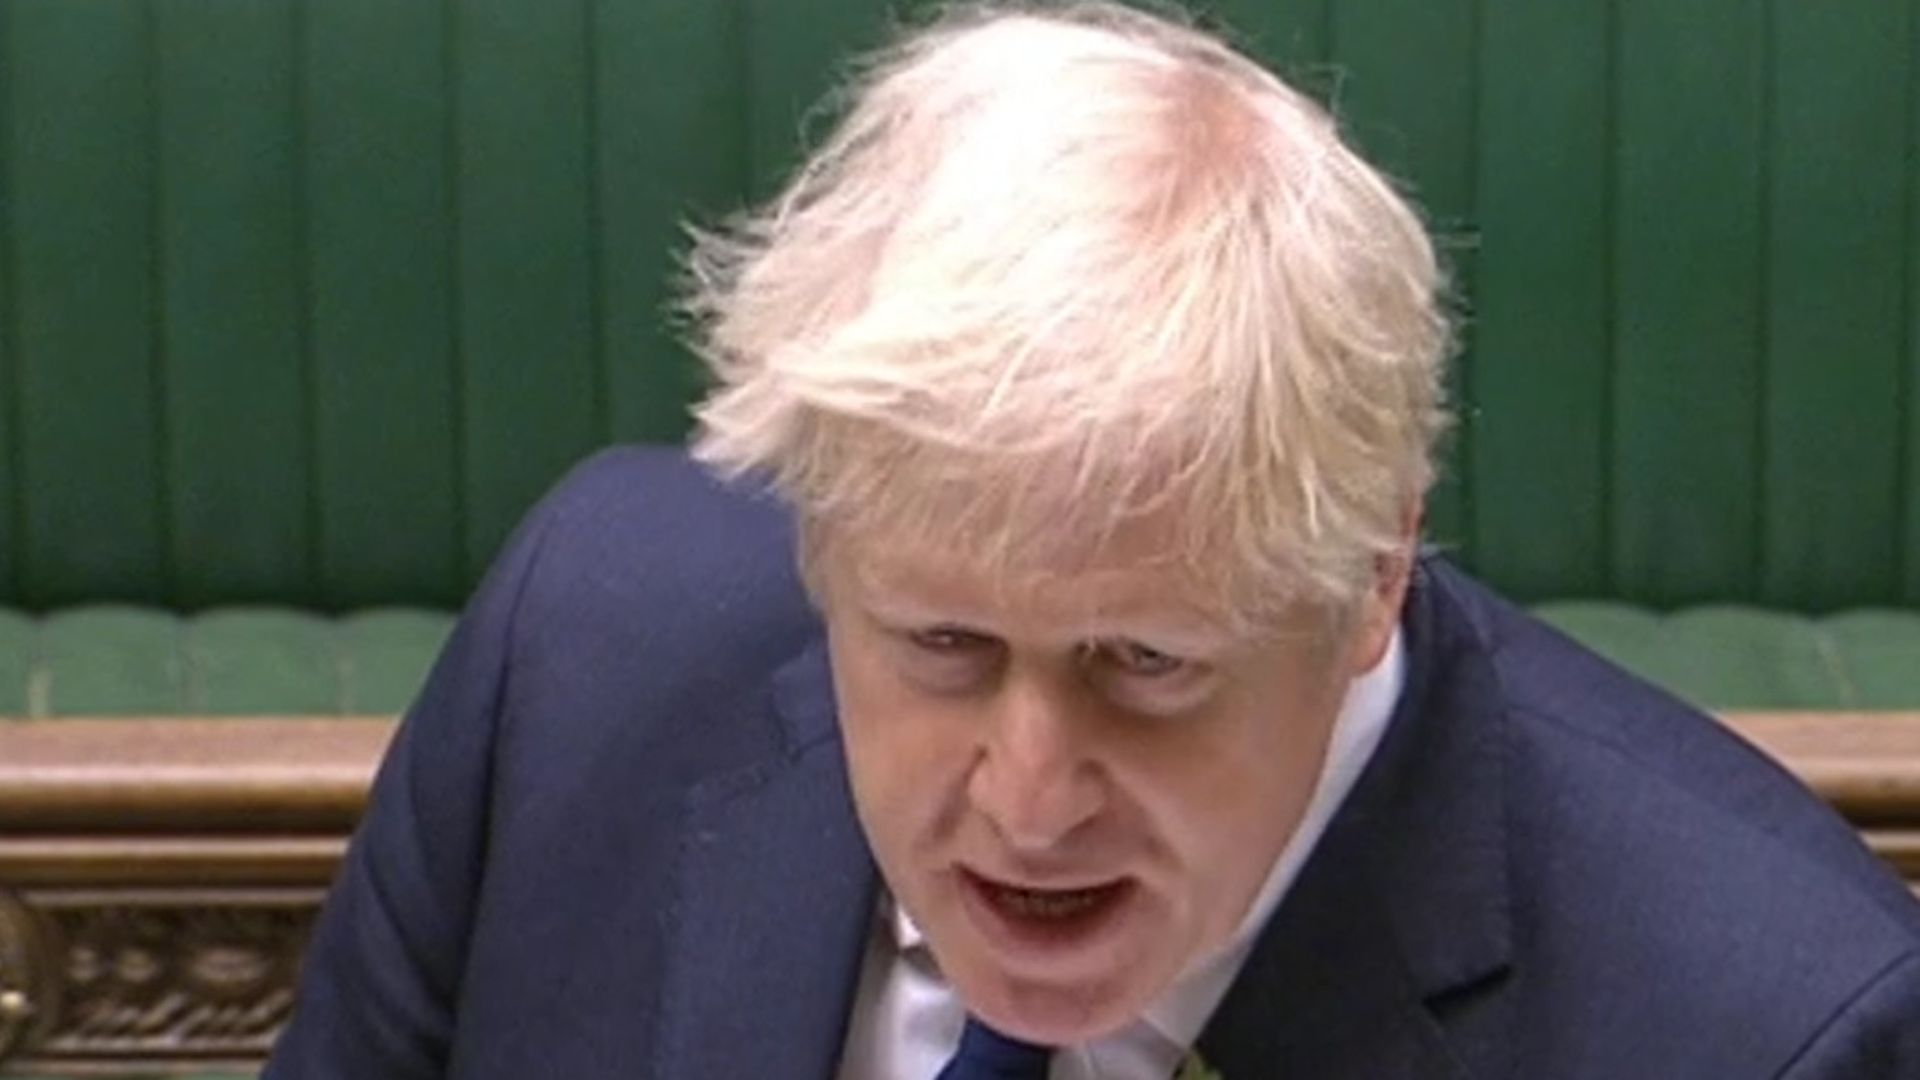 Boris Johnson speaking at prime minister's questions in the House of Commons - Credit: Parliament